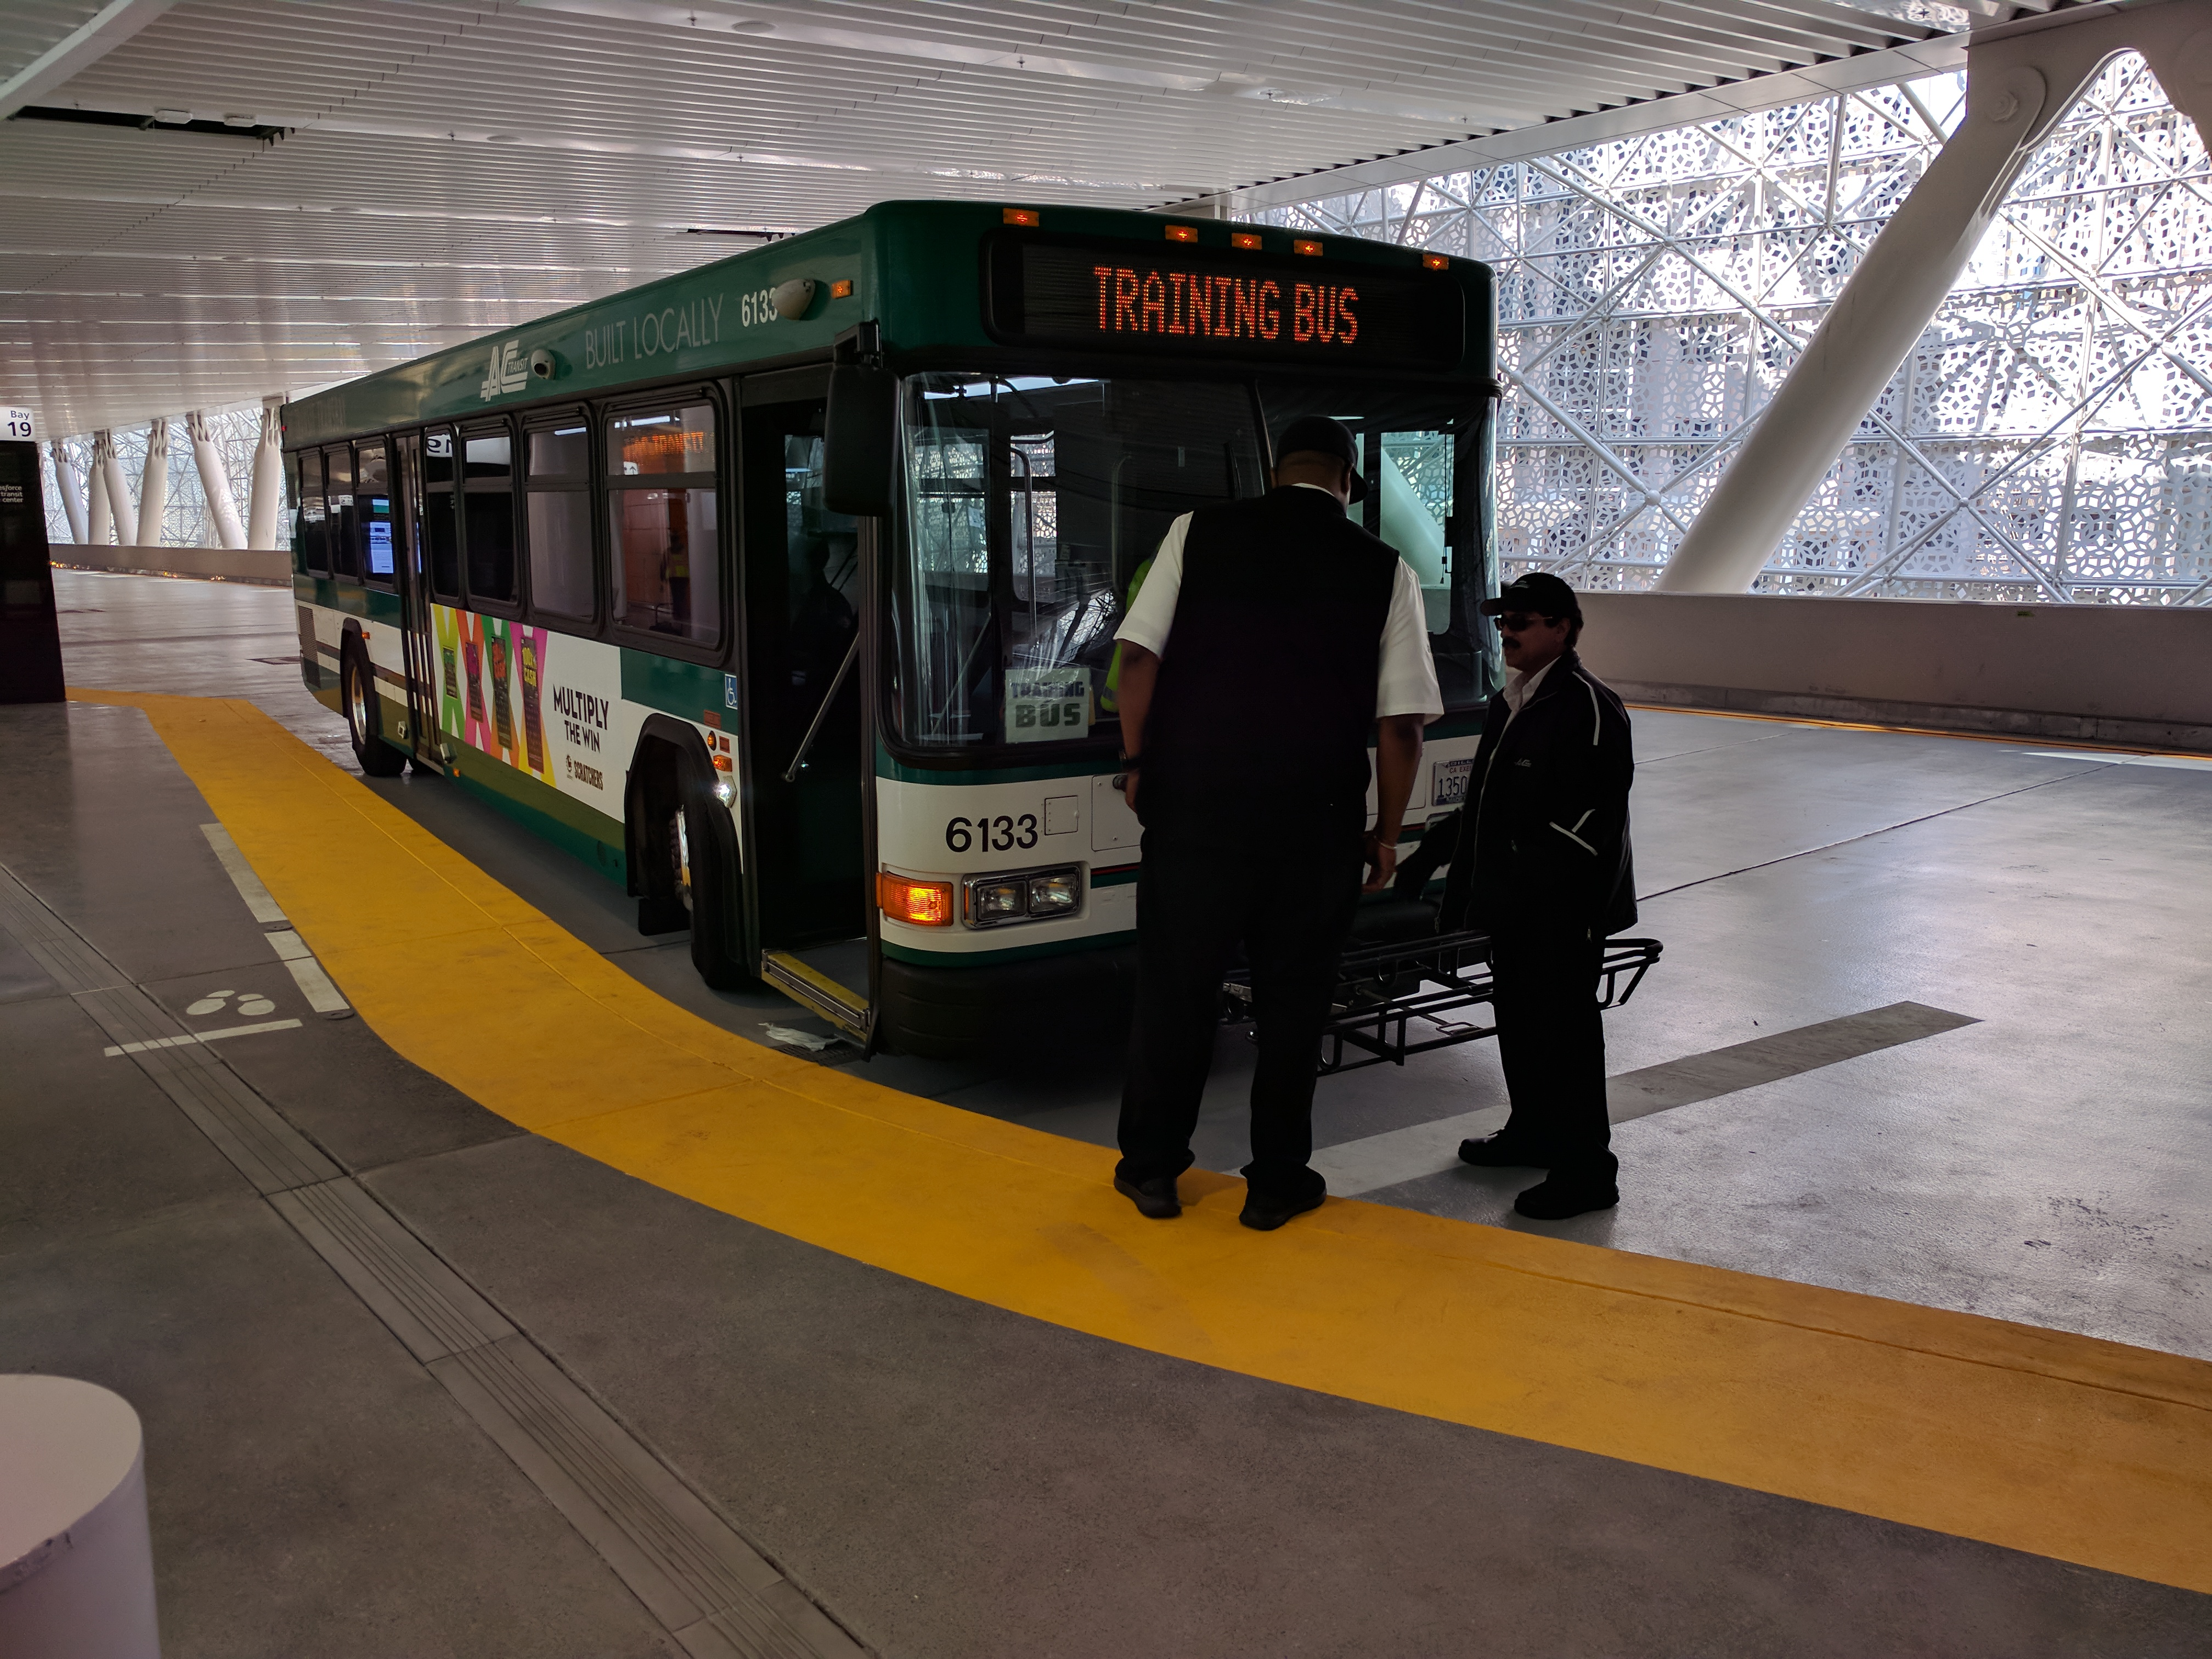 Buses will be able to proceed directly to the upper and lower decks of the bridge, without competing with private cars for space on the bridge ramps and city streets. Once on the bridge, it's back to Bay Area traffic